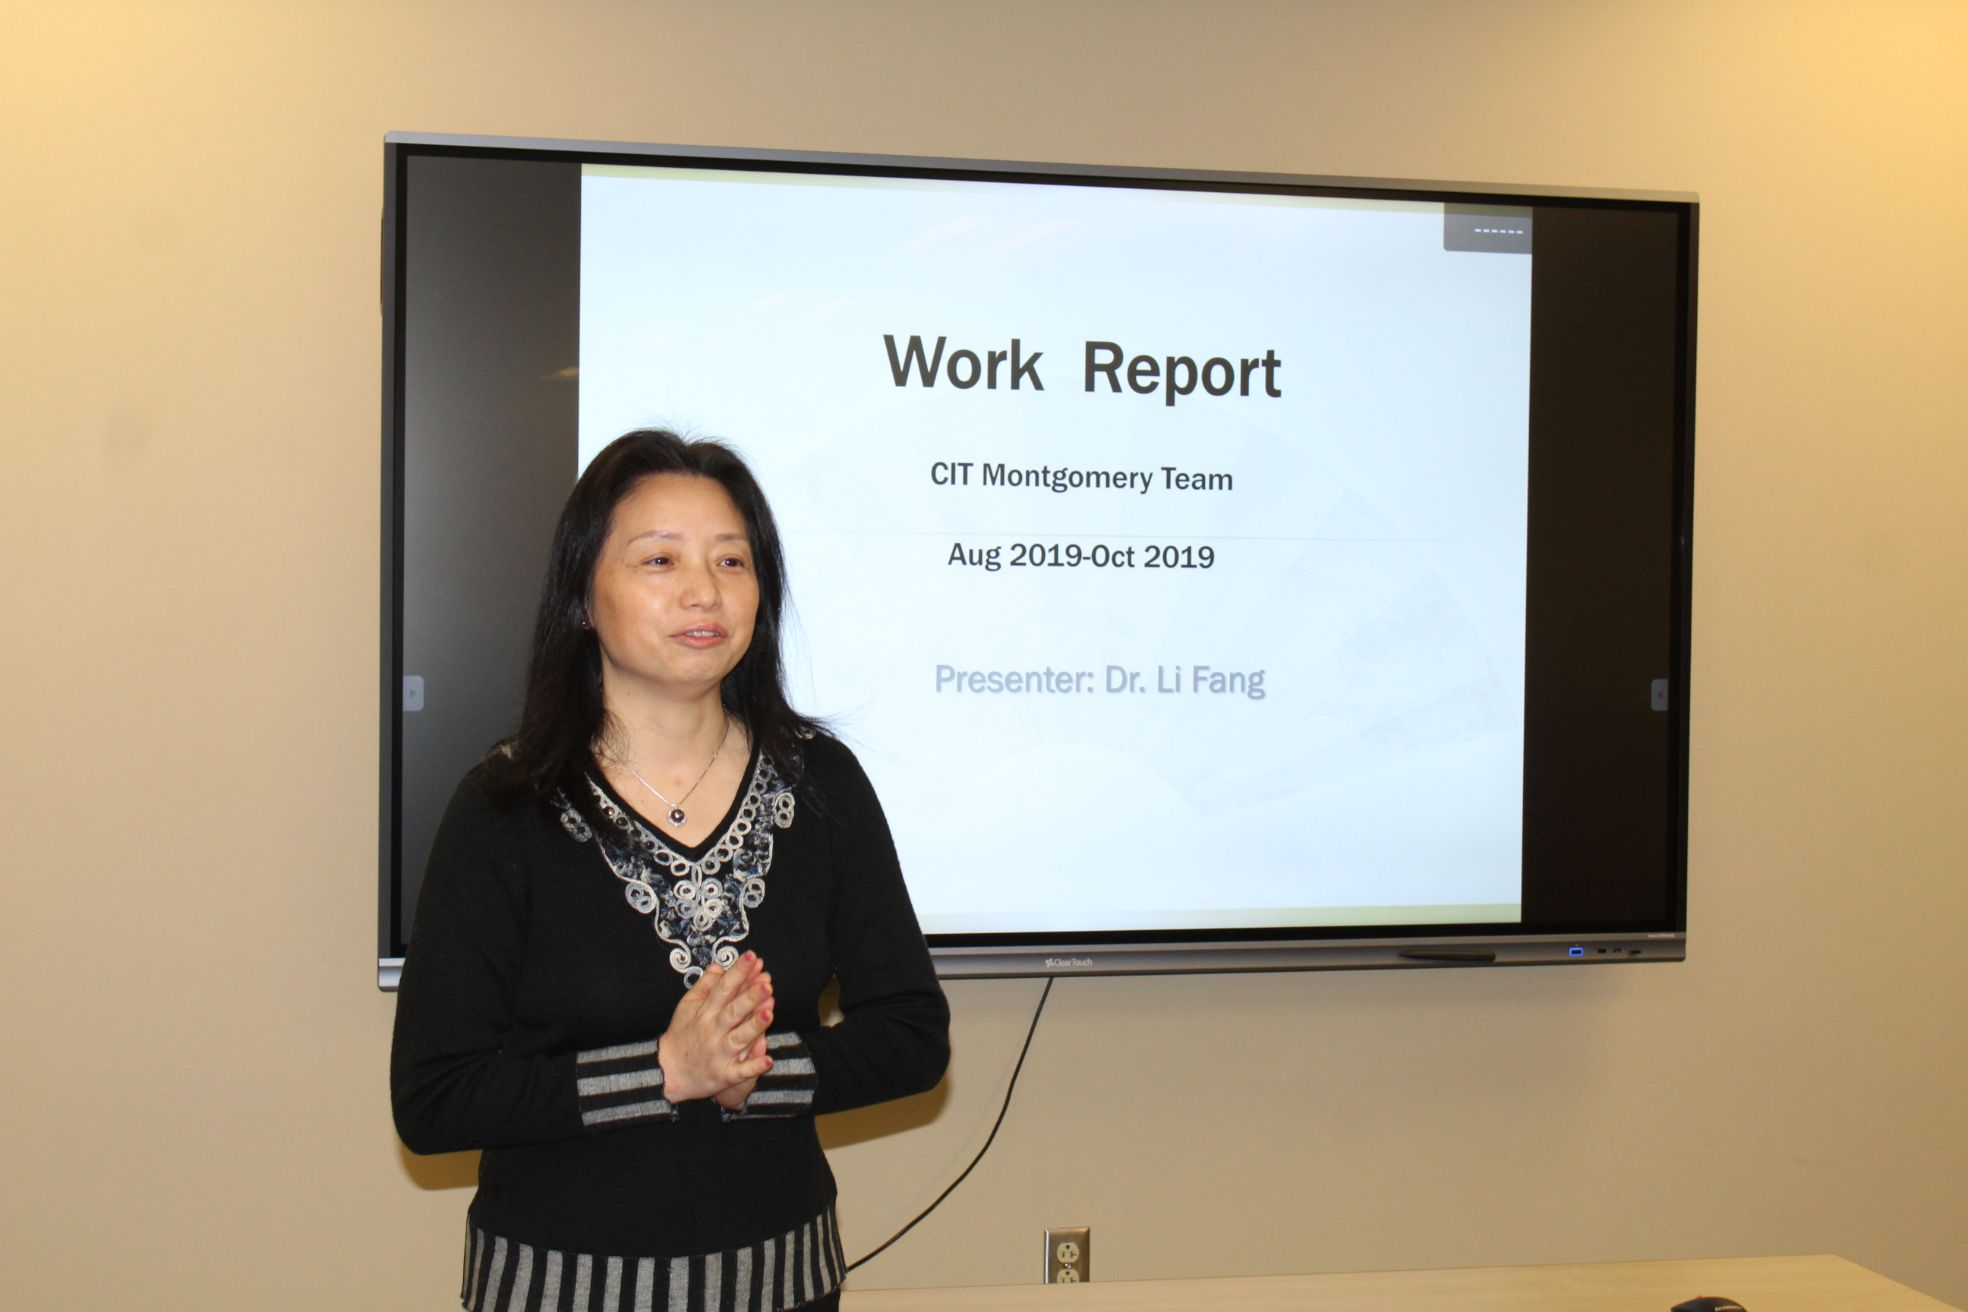 Dr. Fang from Montgomery gives a report at the seminar.